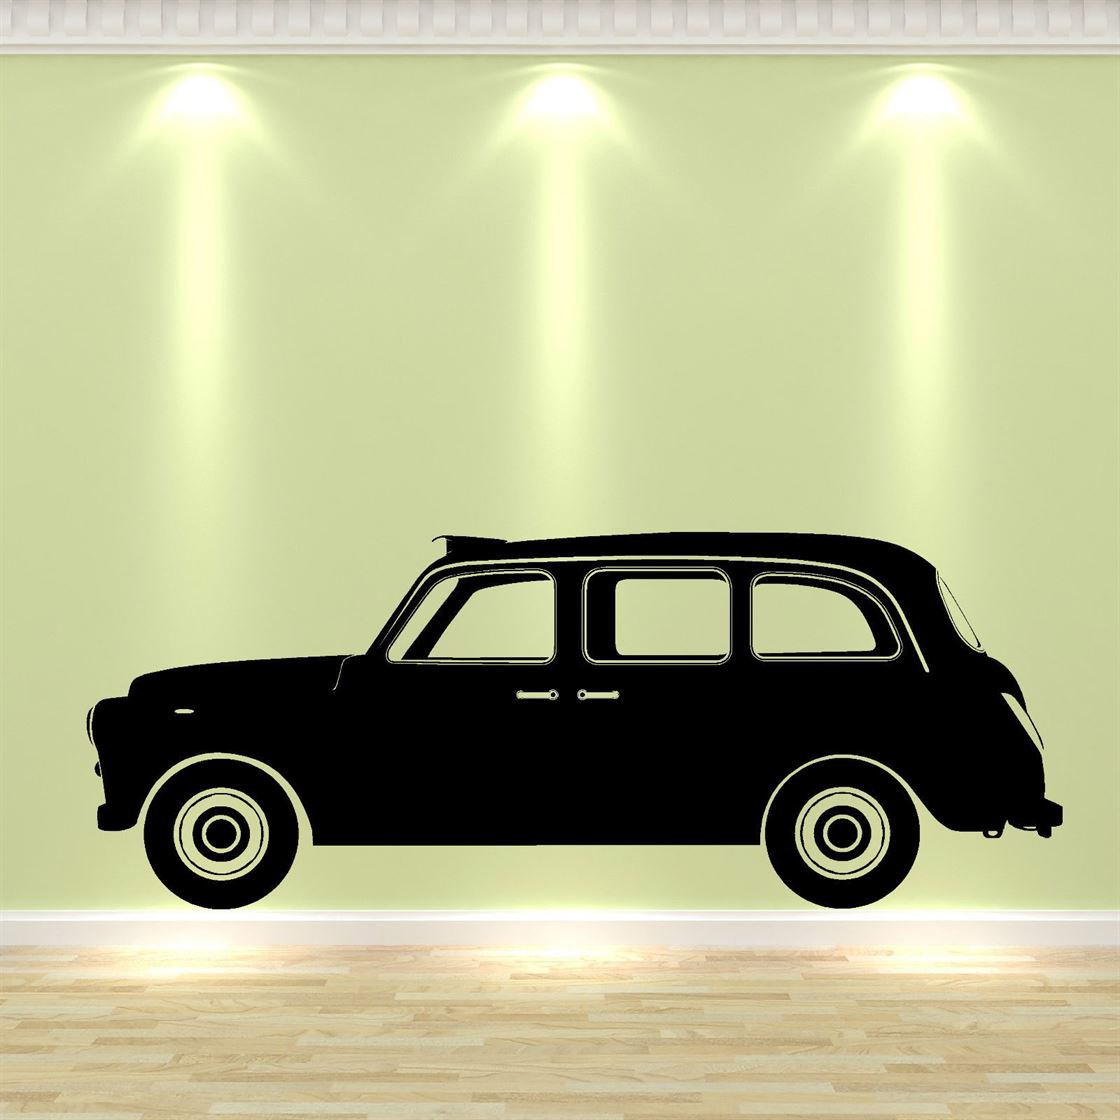 G100 LONDON TAXI CAB vinyl wall art sticker decal Family bedroom ...